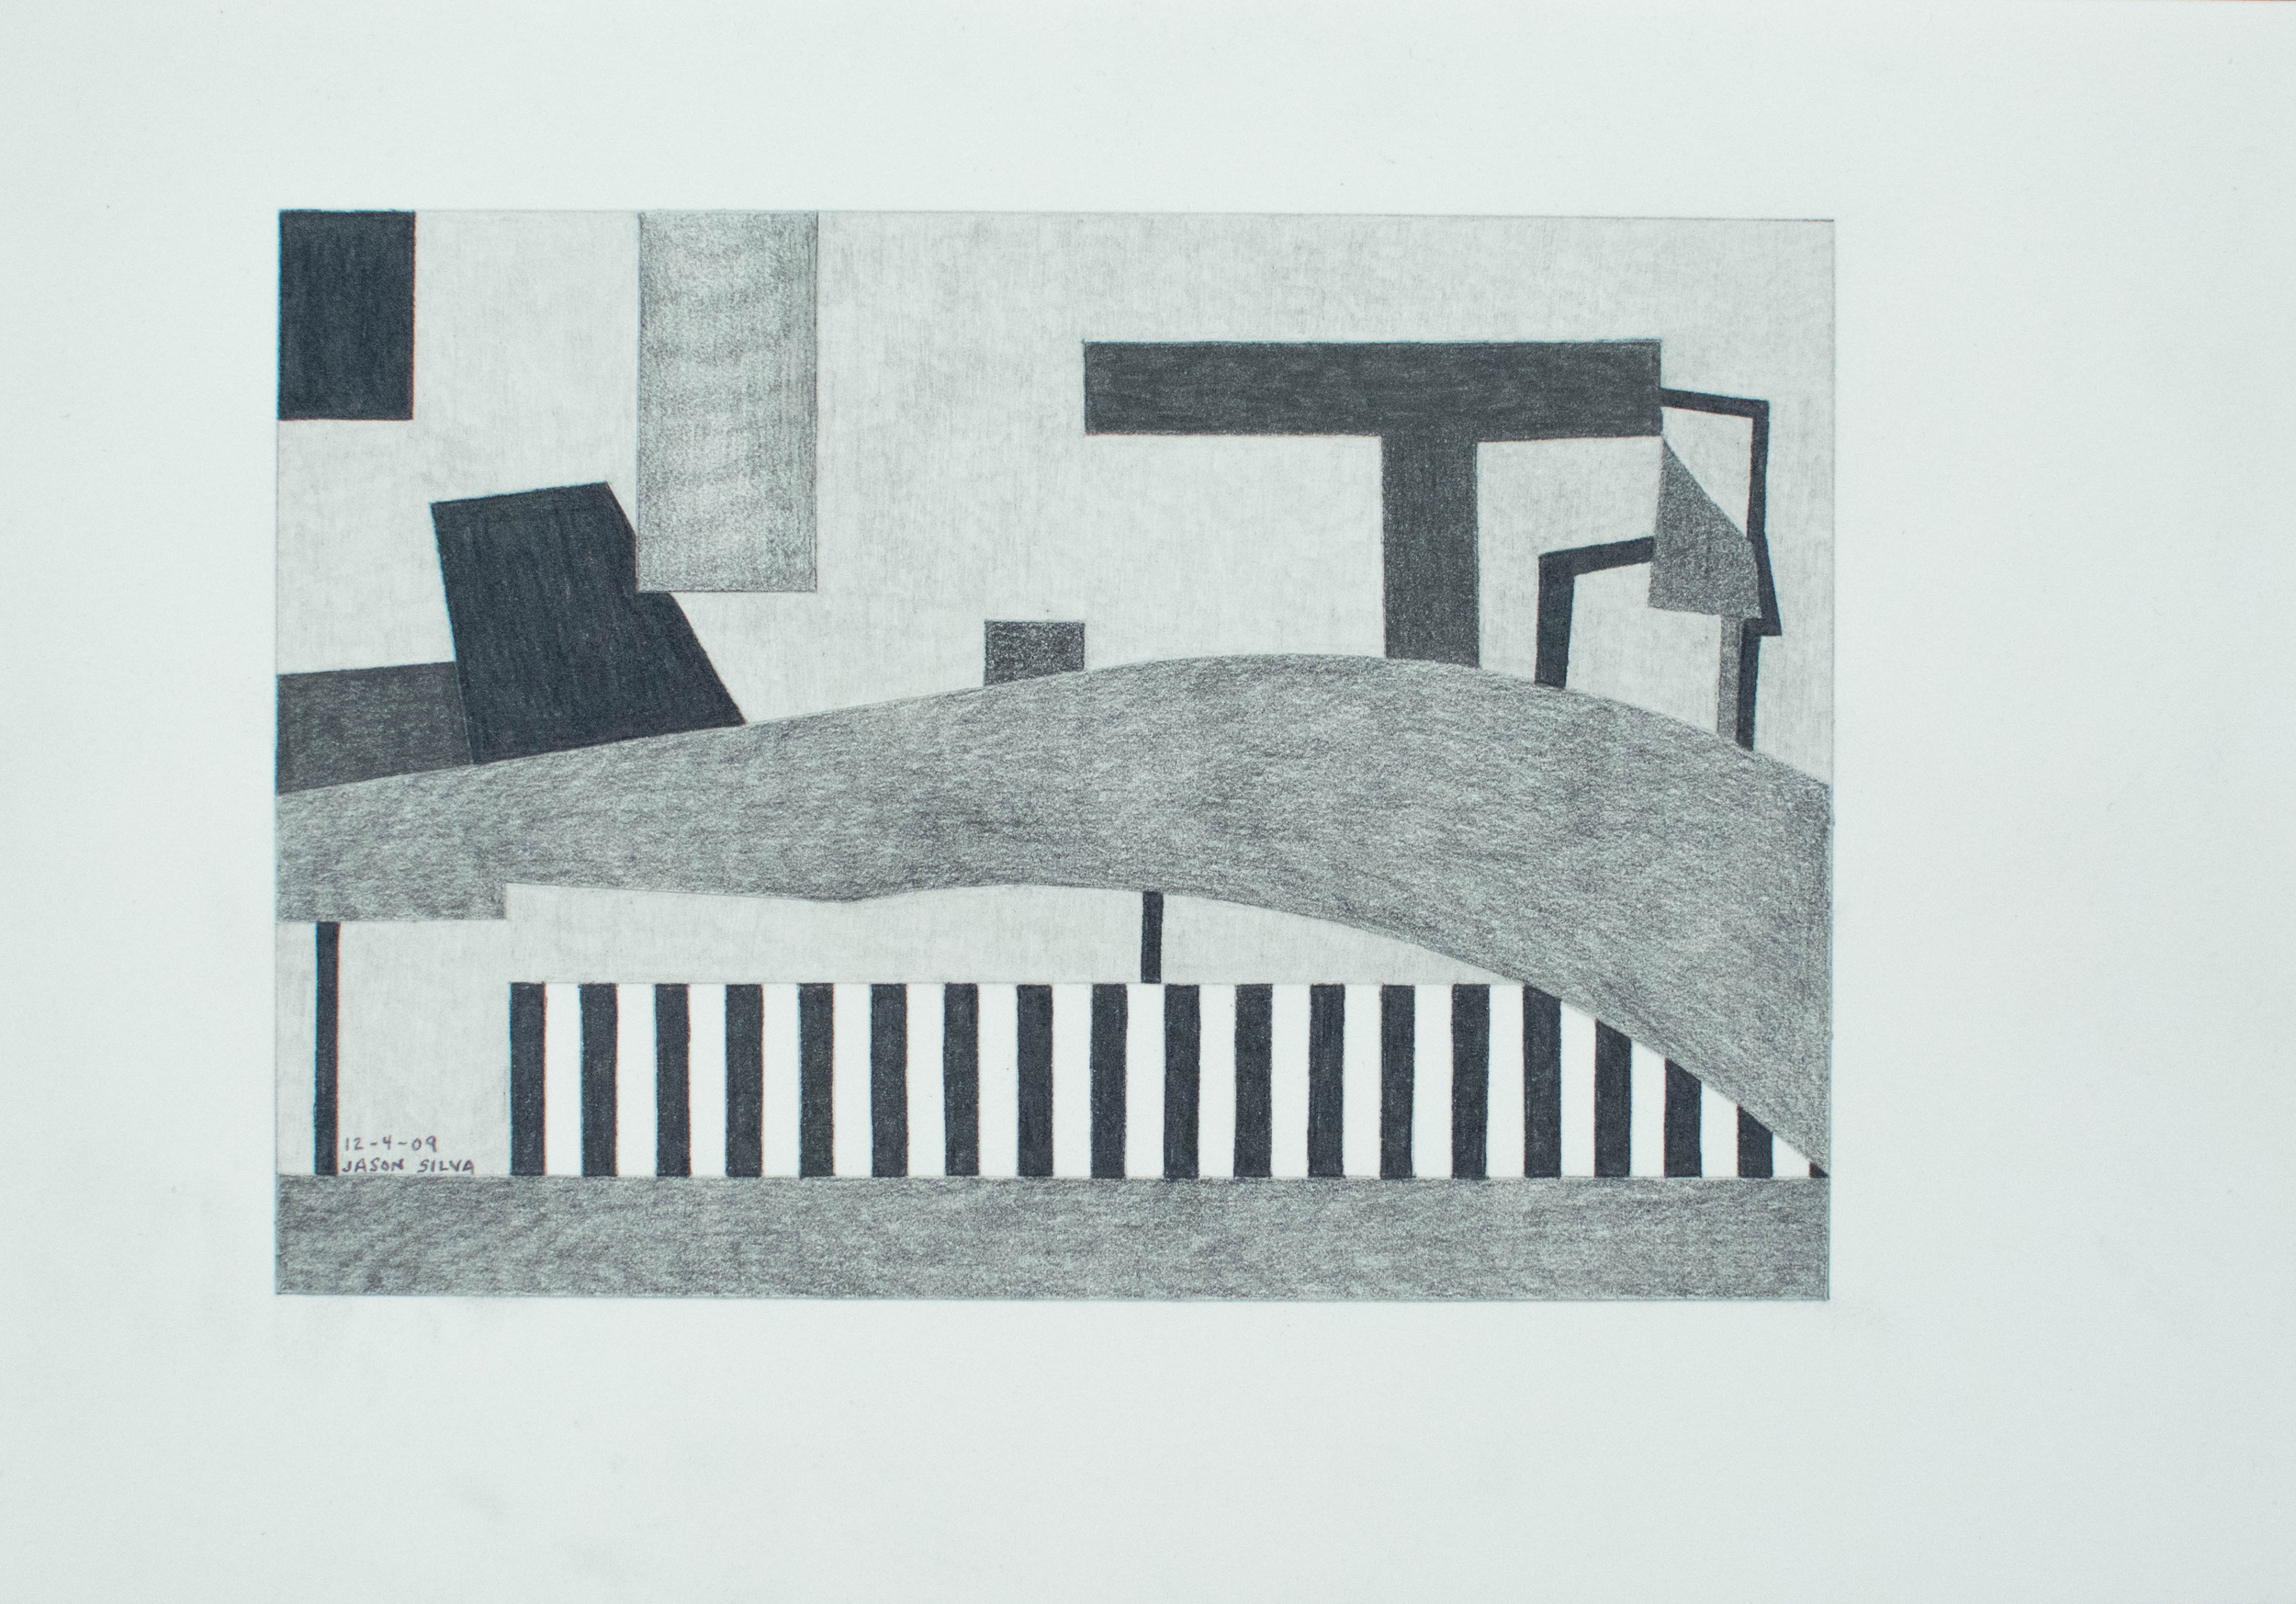 12-4-09, 2009, Graphite on paper, 7 x 10 inches